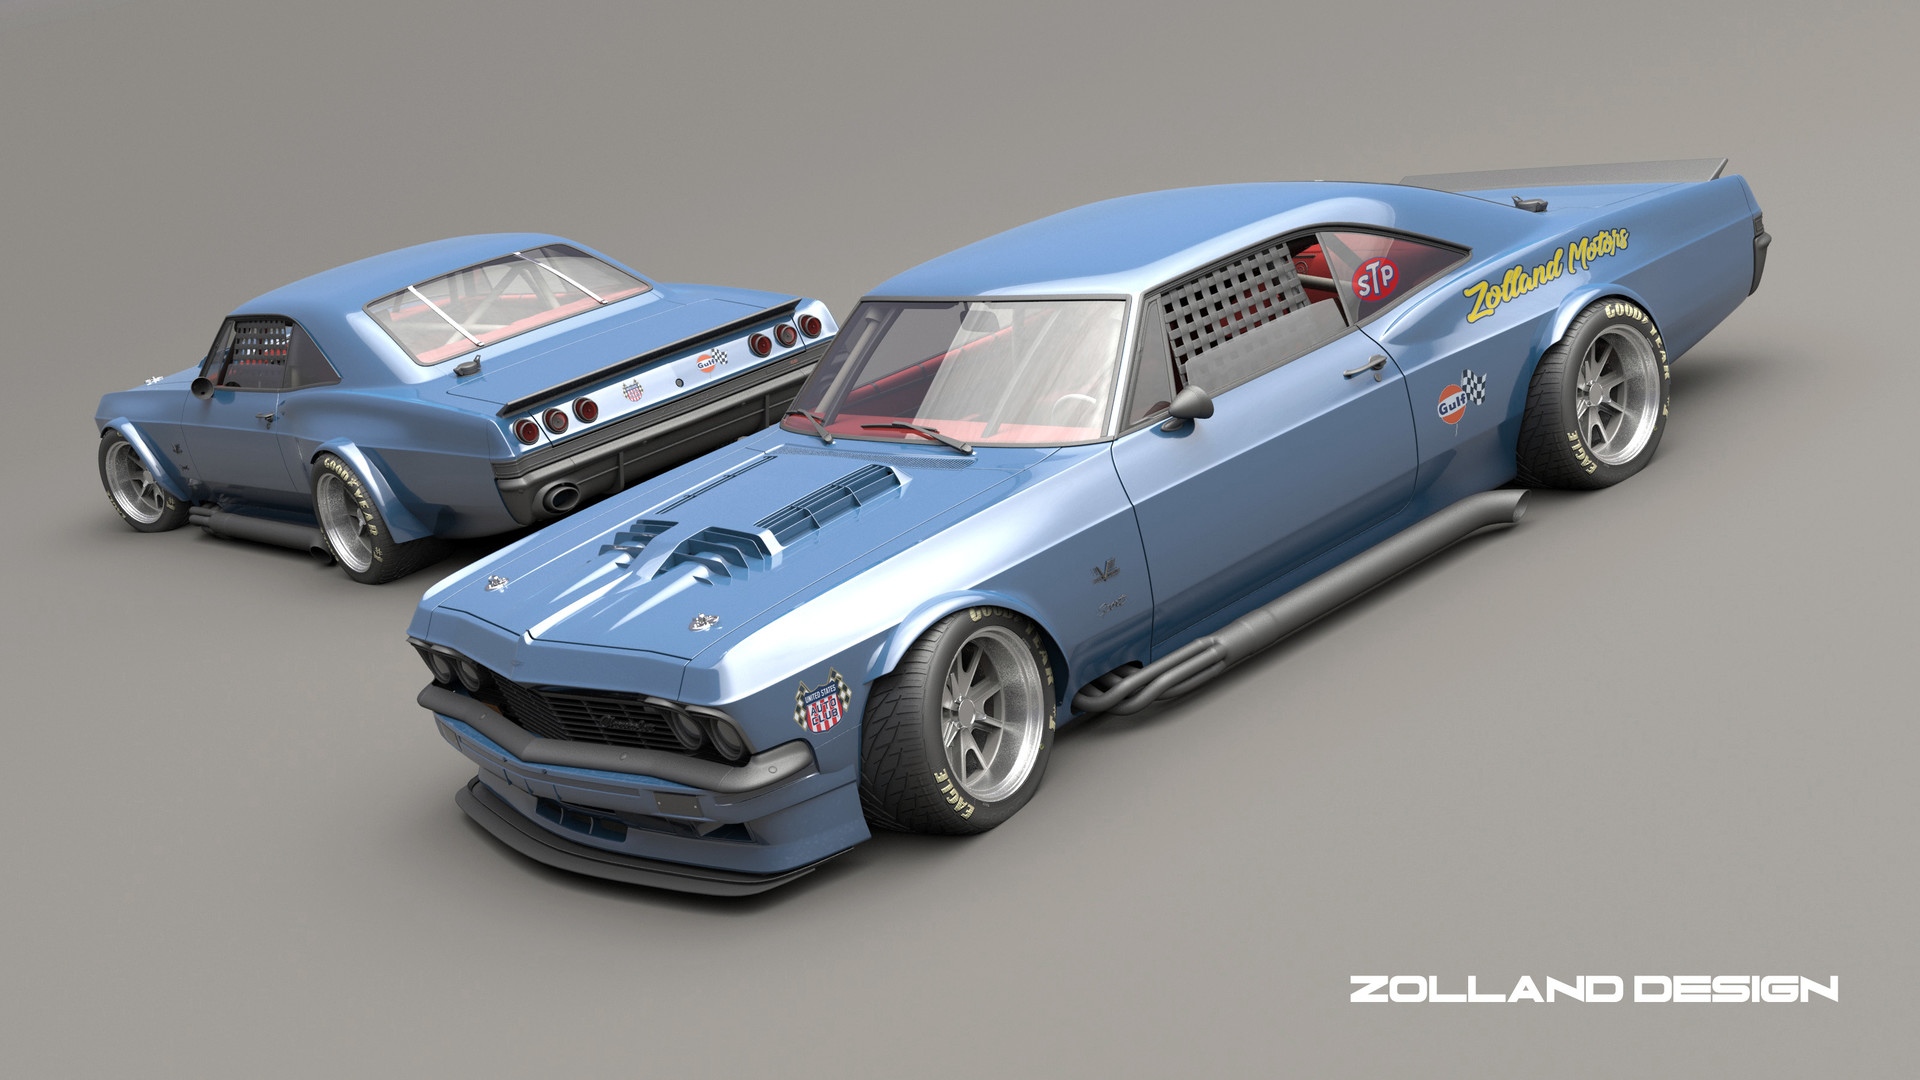 ArtStation - impala vintage racing, bo zolland